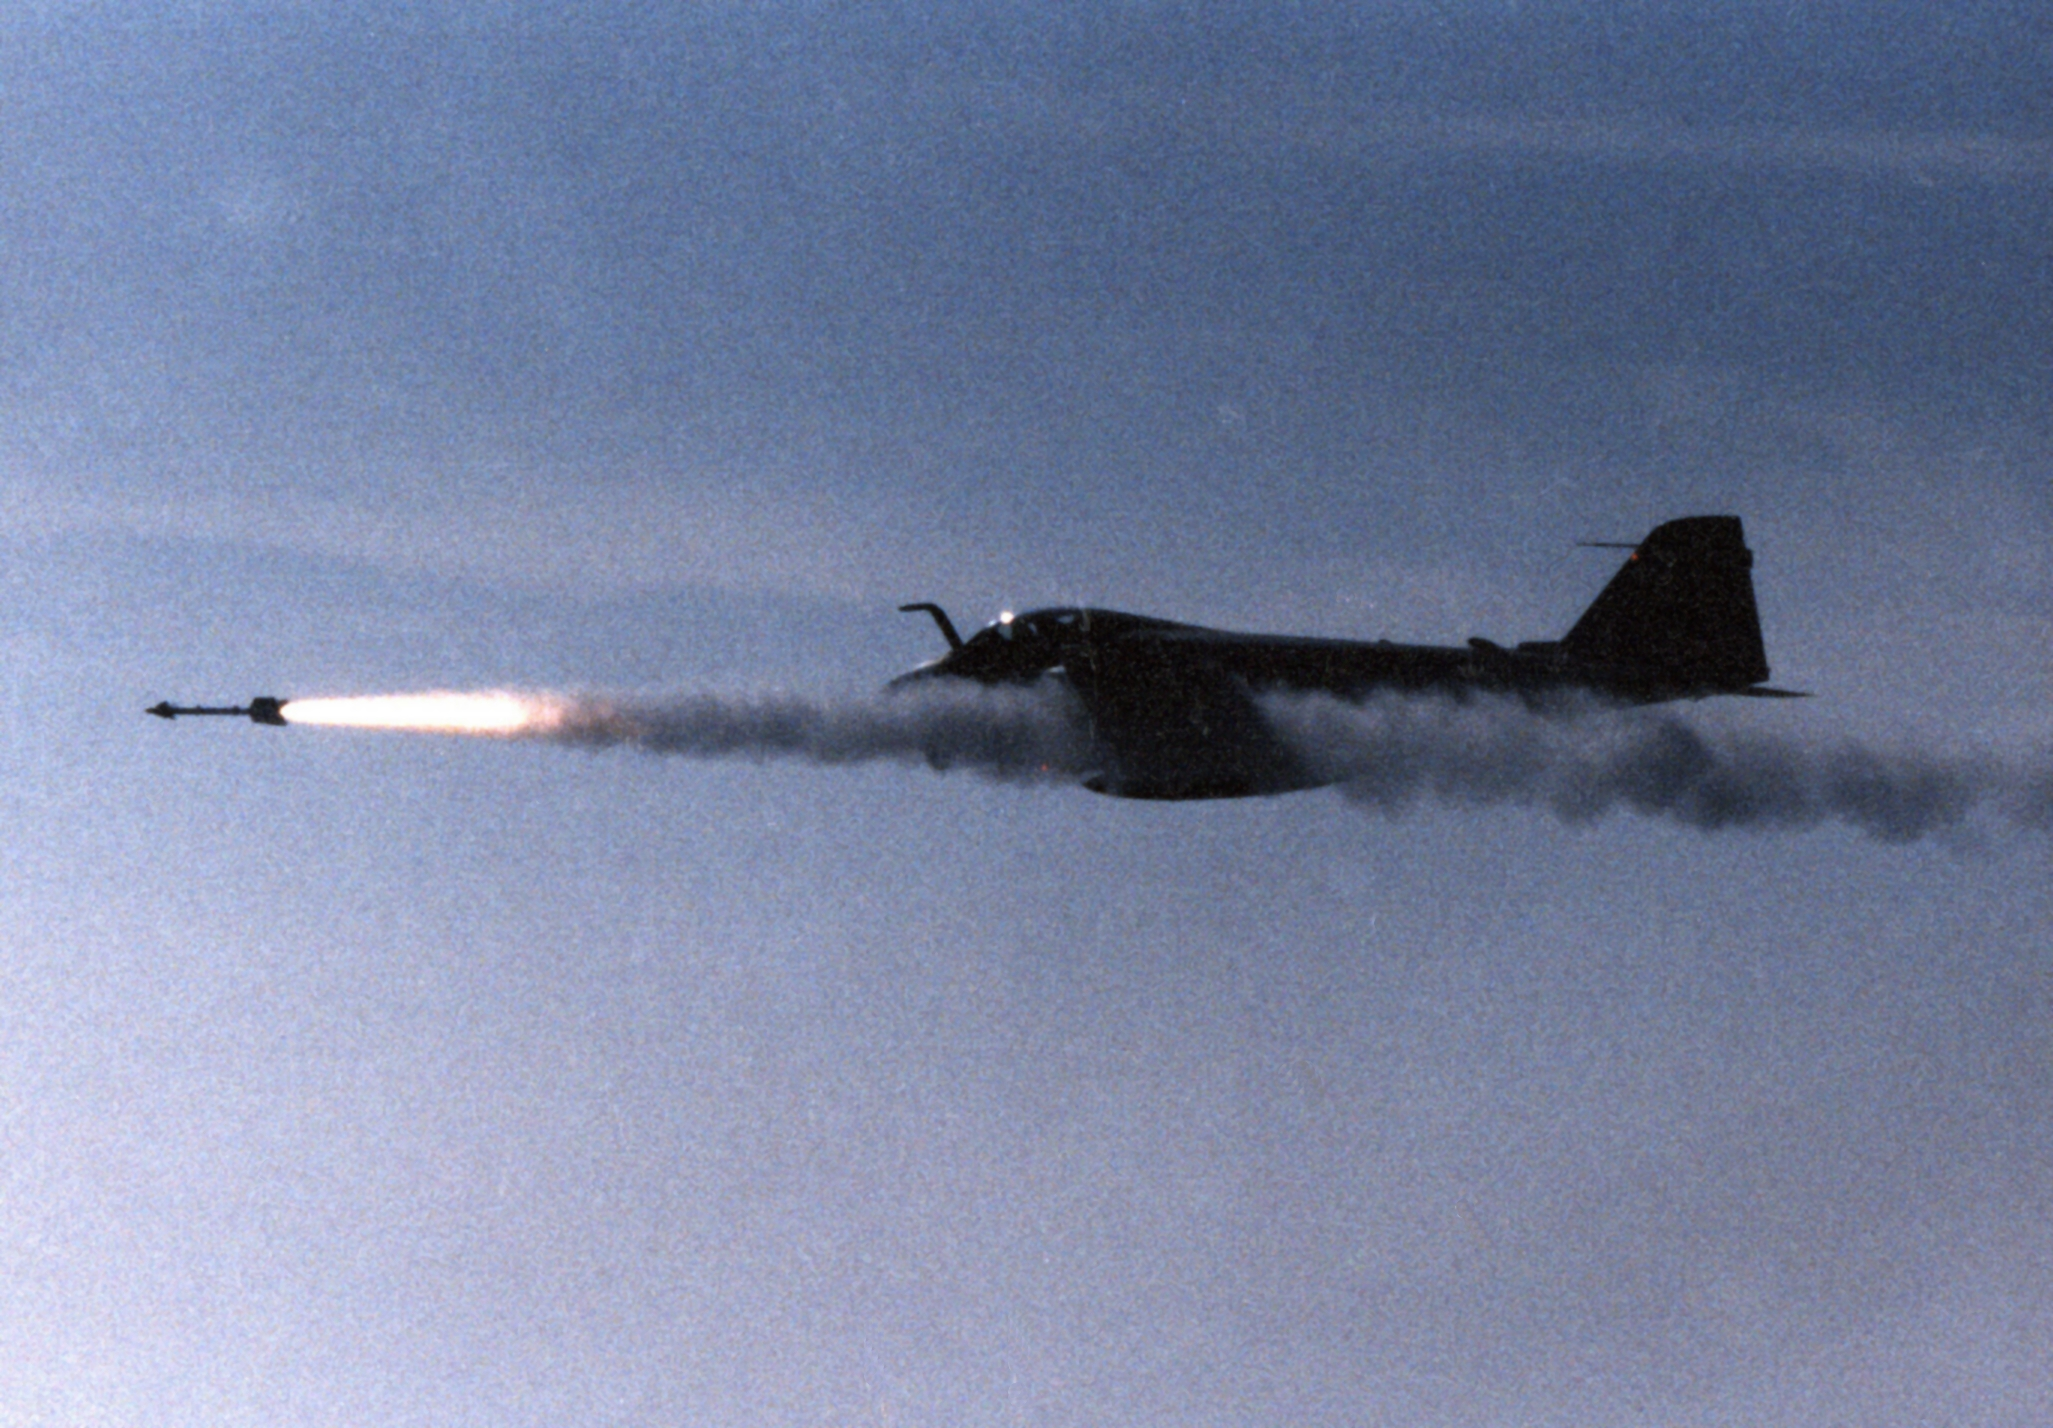 https://upload.wikimedia.org/wikipedia/commons/5/55/A-6E_VA-75_fires_Sidewinder_1989.jpeg